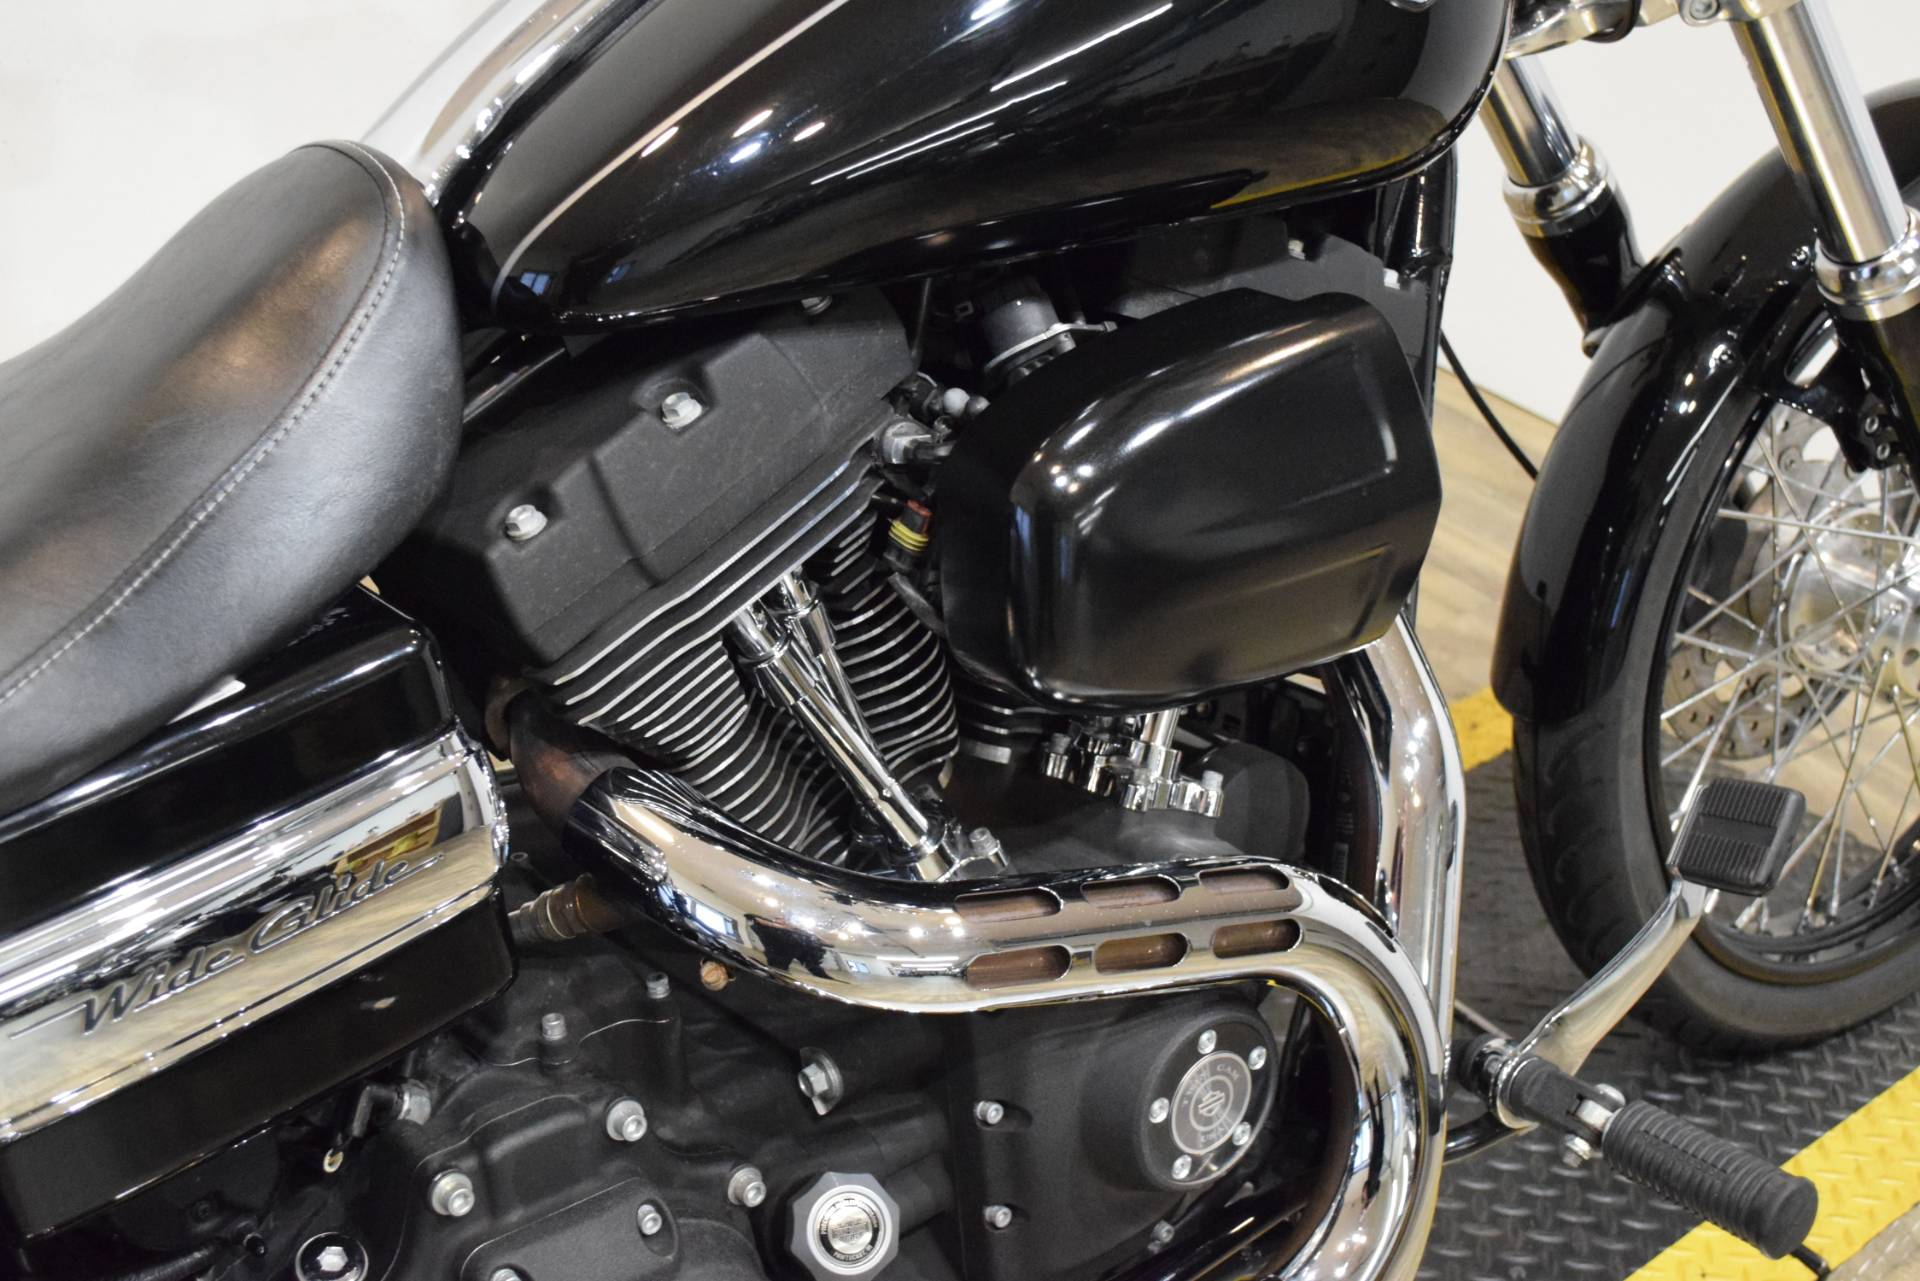 2011 Harley-Davidson Dyna® Wide Glide® in Wauconda, Illinois